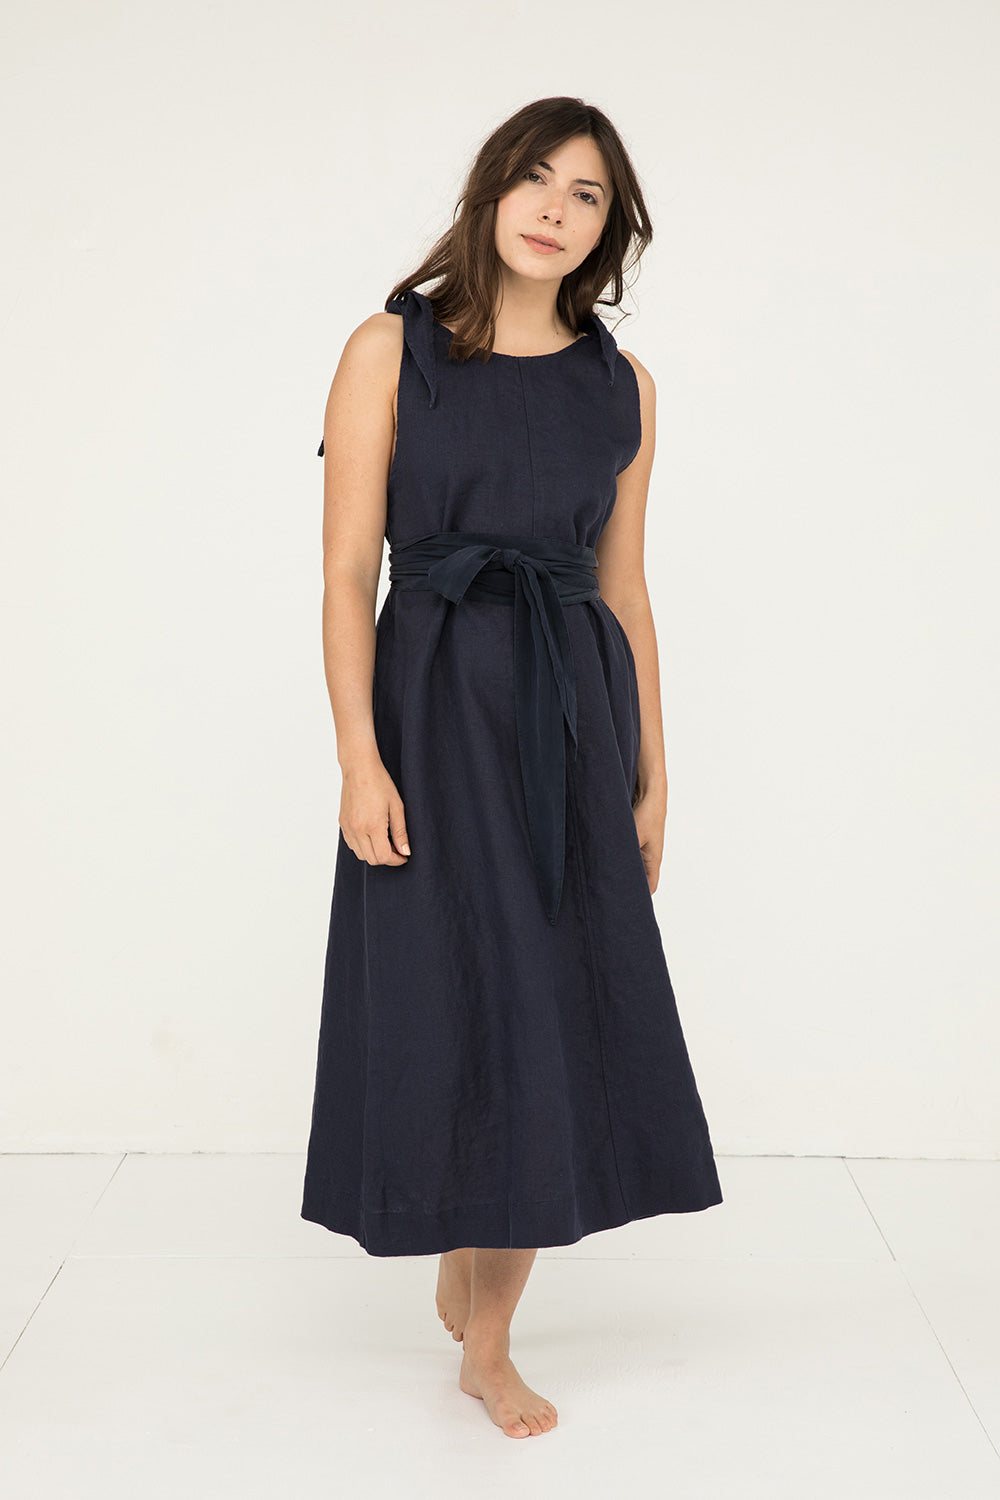 Asawa Tie Belt in Silk Crepe Navy - Molly-OSM